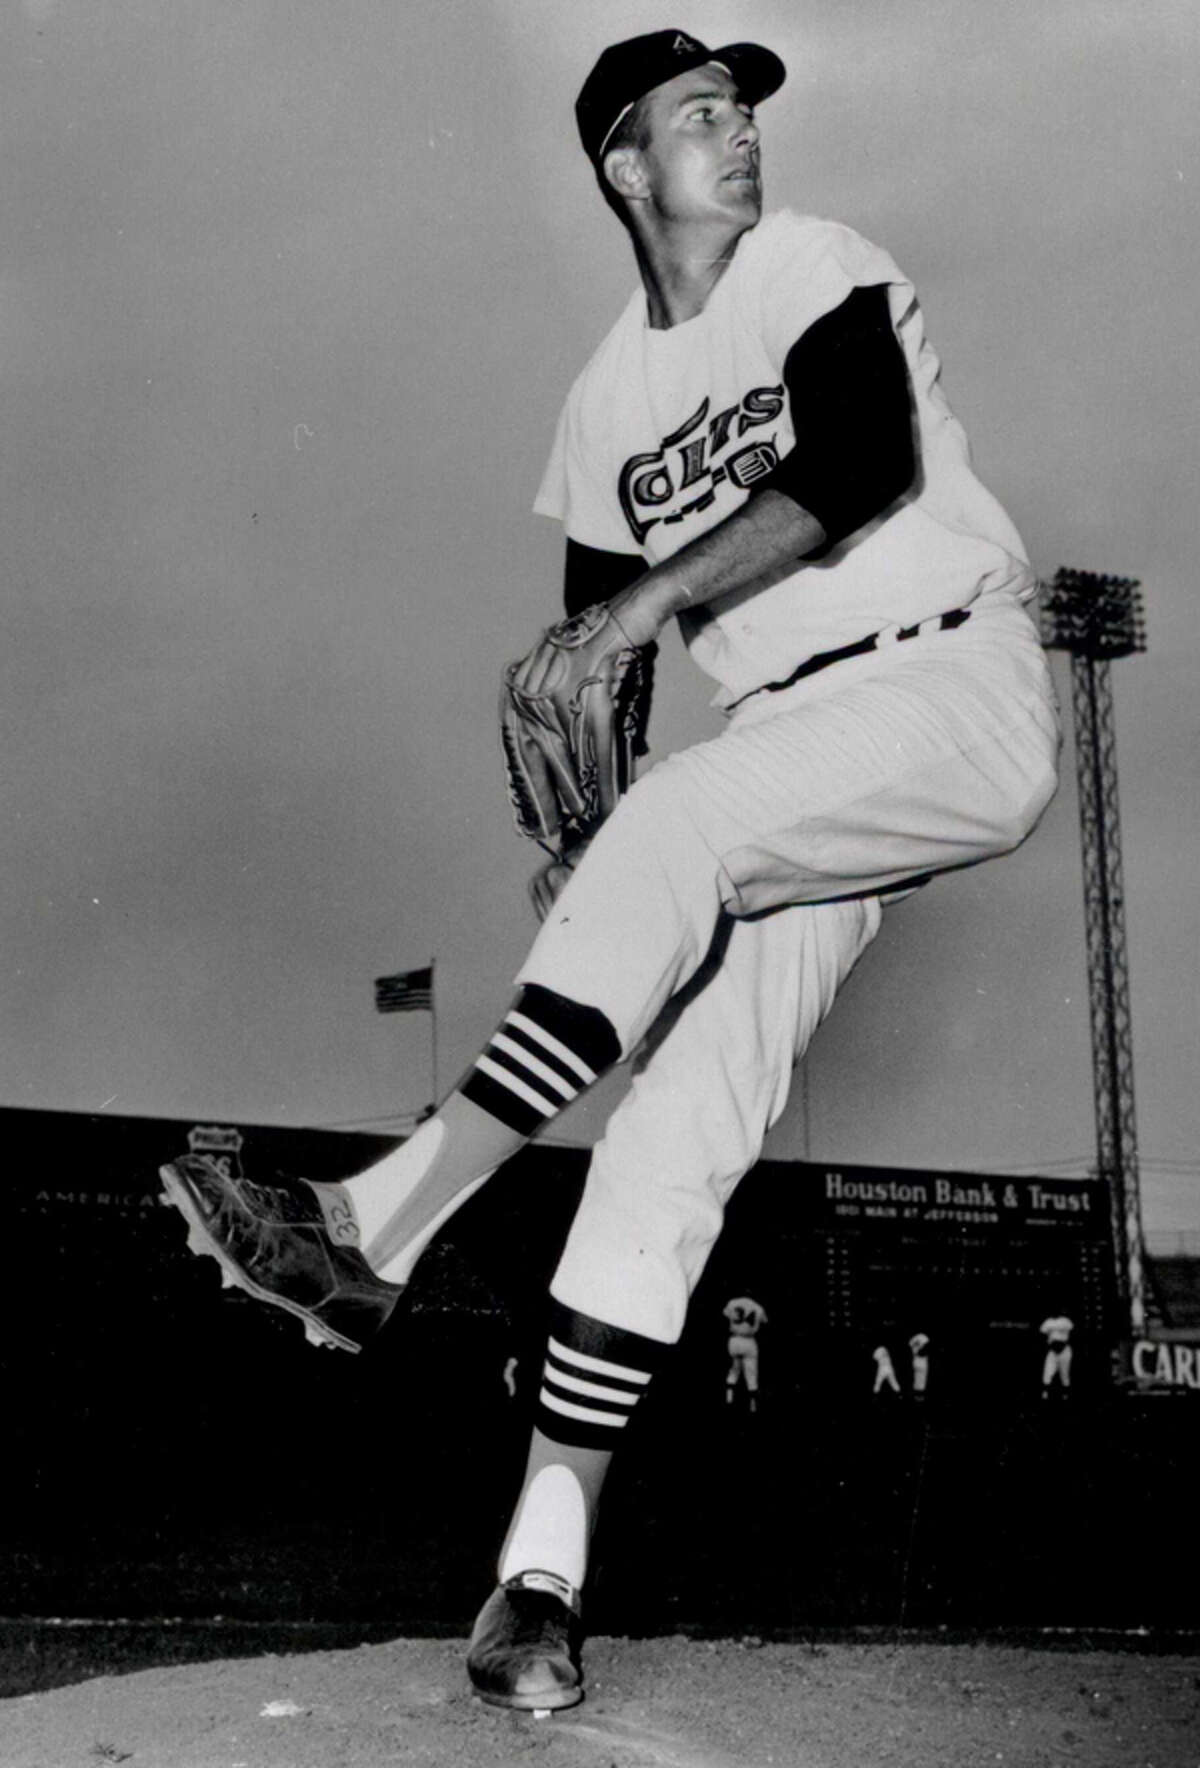 Jim Umbricht was 8-3 in two seasons on the hill for the Astros. He is most well known for his battle against cancer. He underwent surgery to have a tumor removed in March 1963 but came back the next season and went 4-3 with a 2.61 ERA.